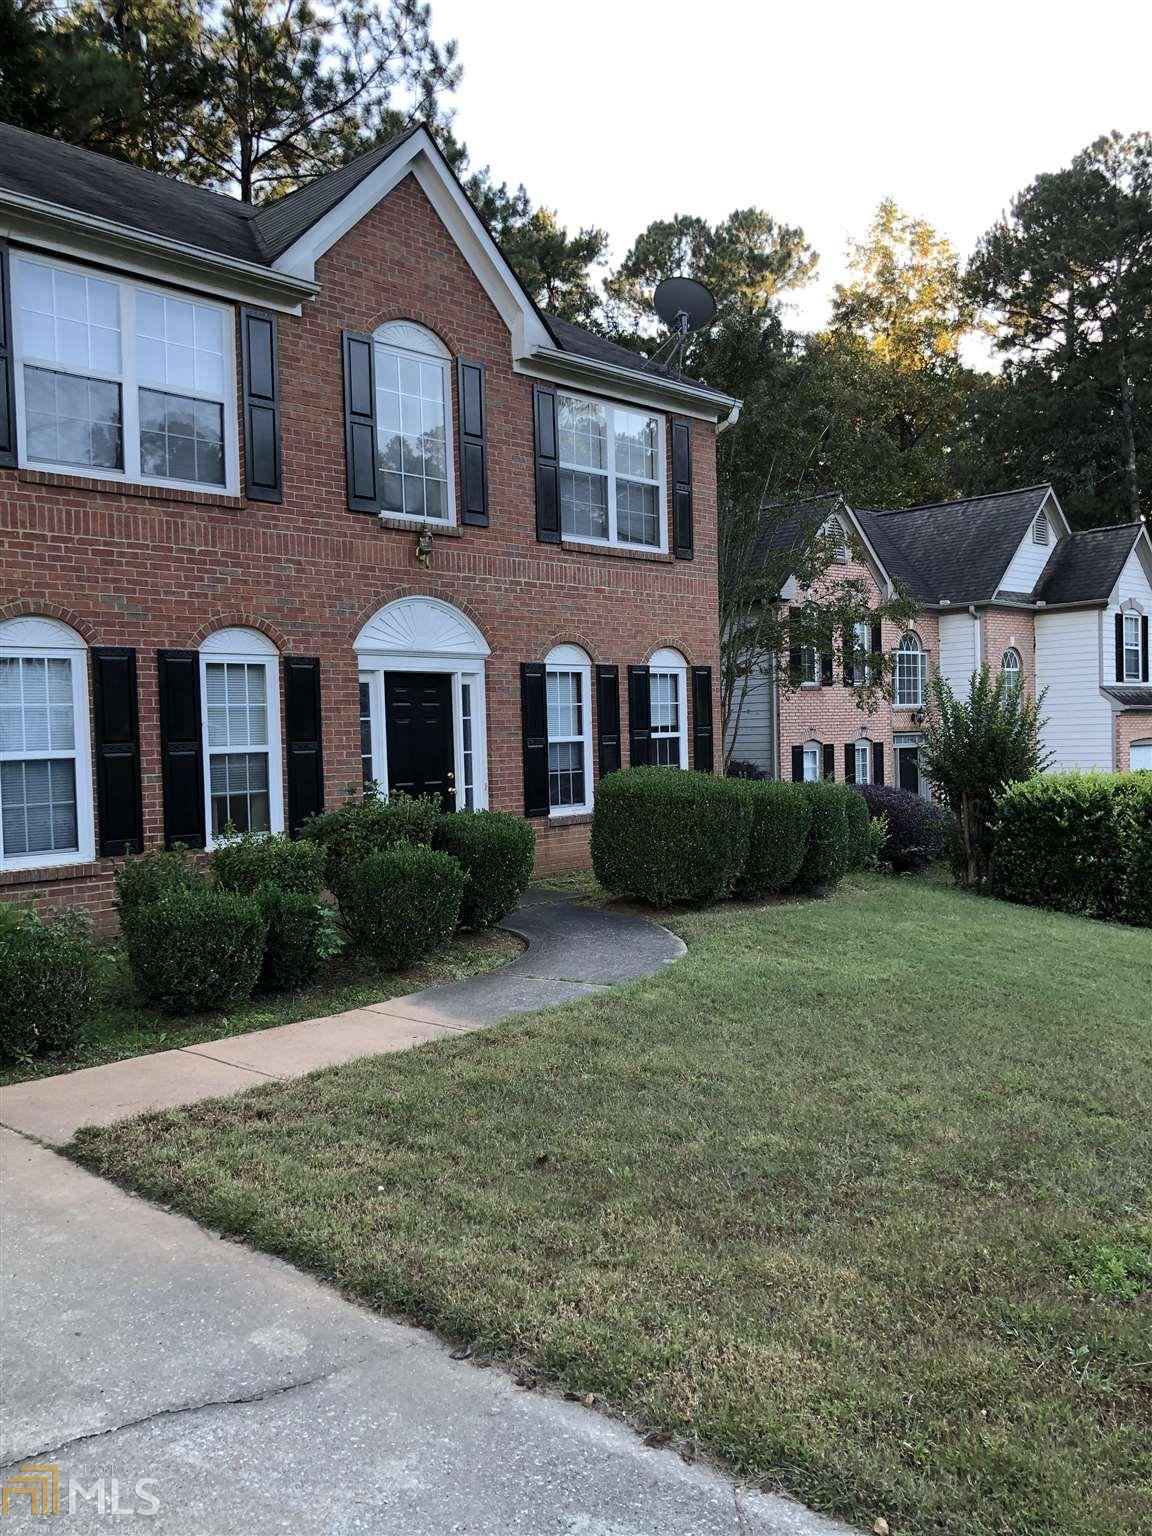 1631 Sparrow Wood Ln, Marietta, GA 30008 - MLS#: 8886677